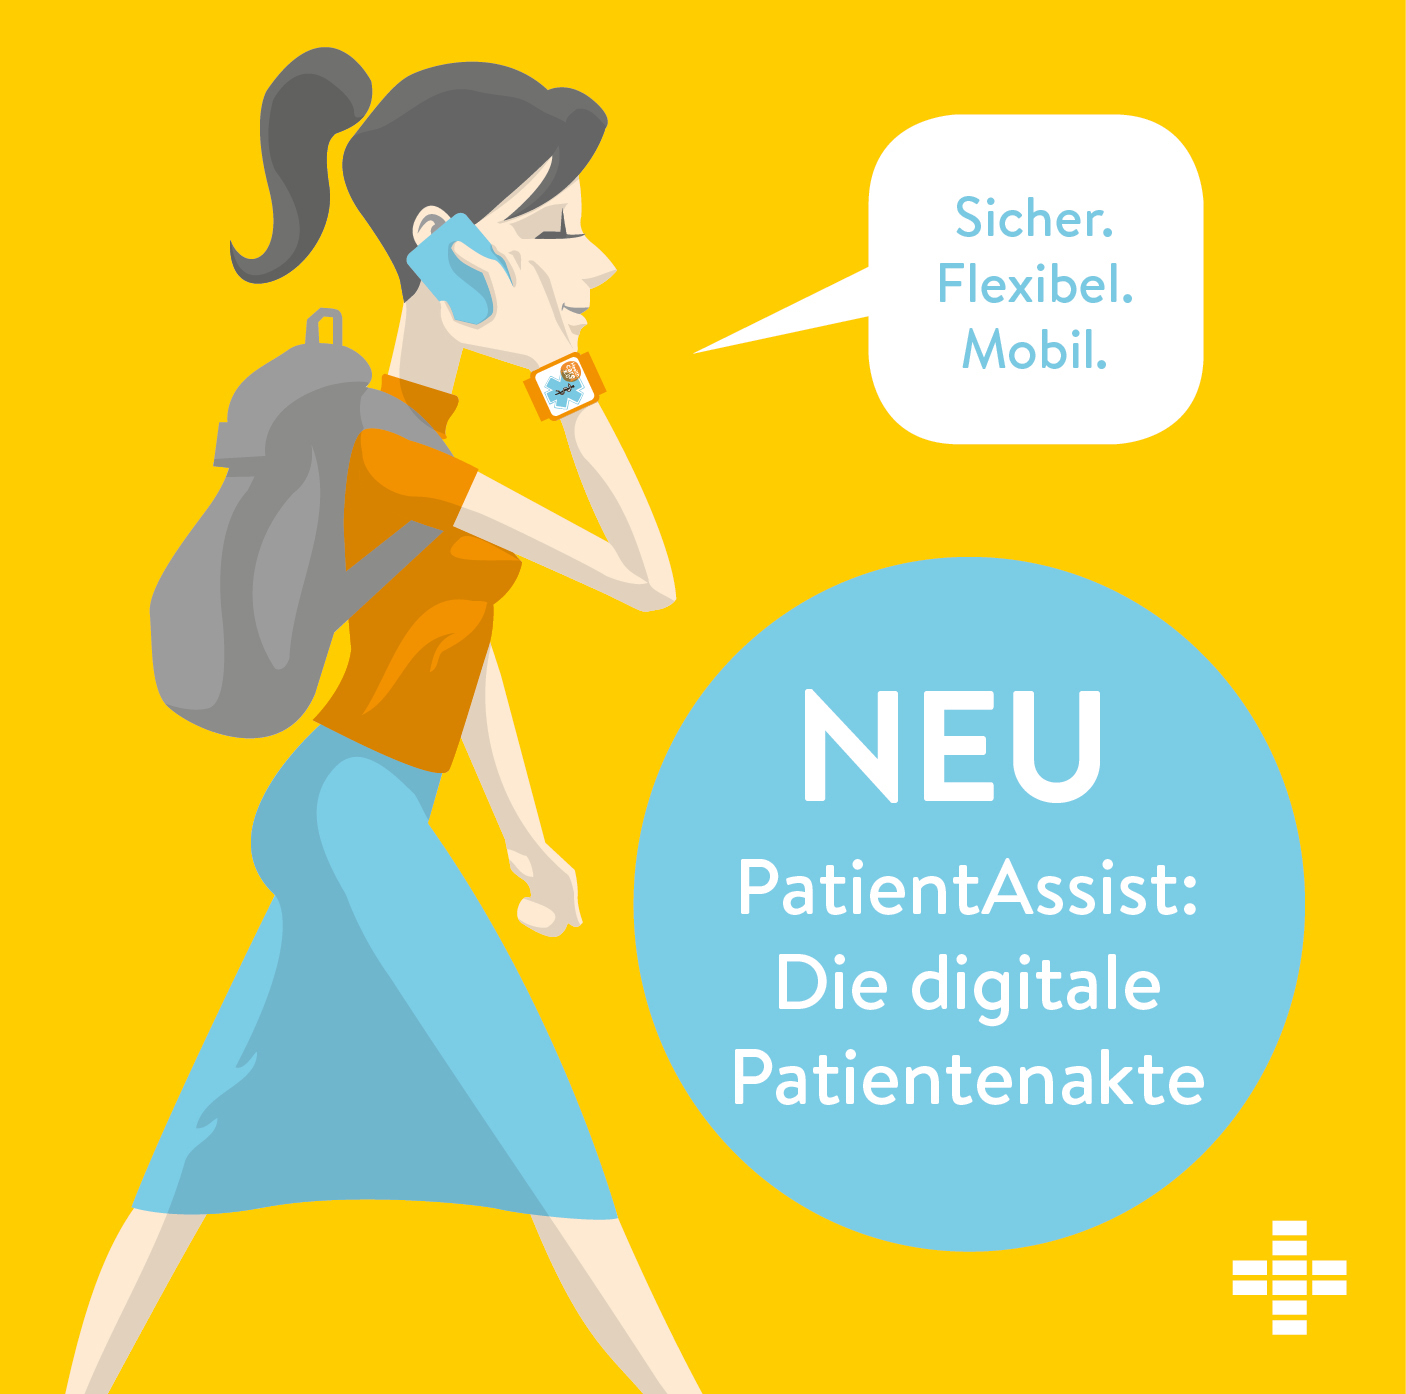 Neu PatientAssist: Die digitale Patientenakte